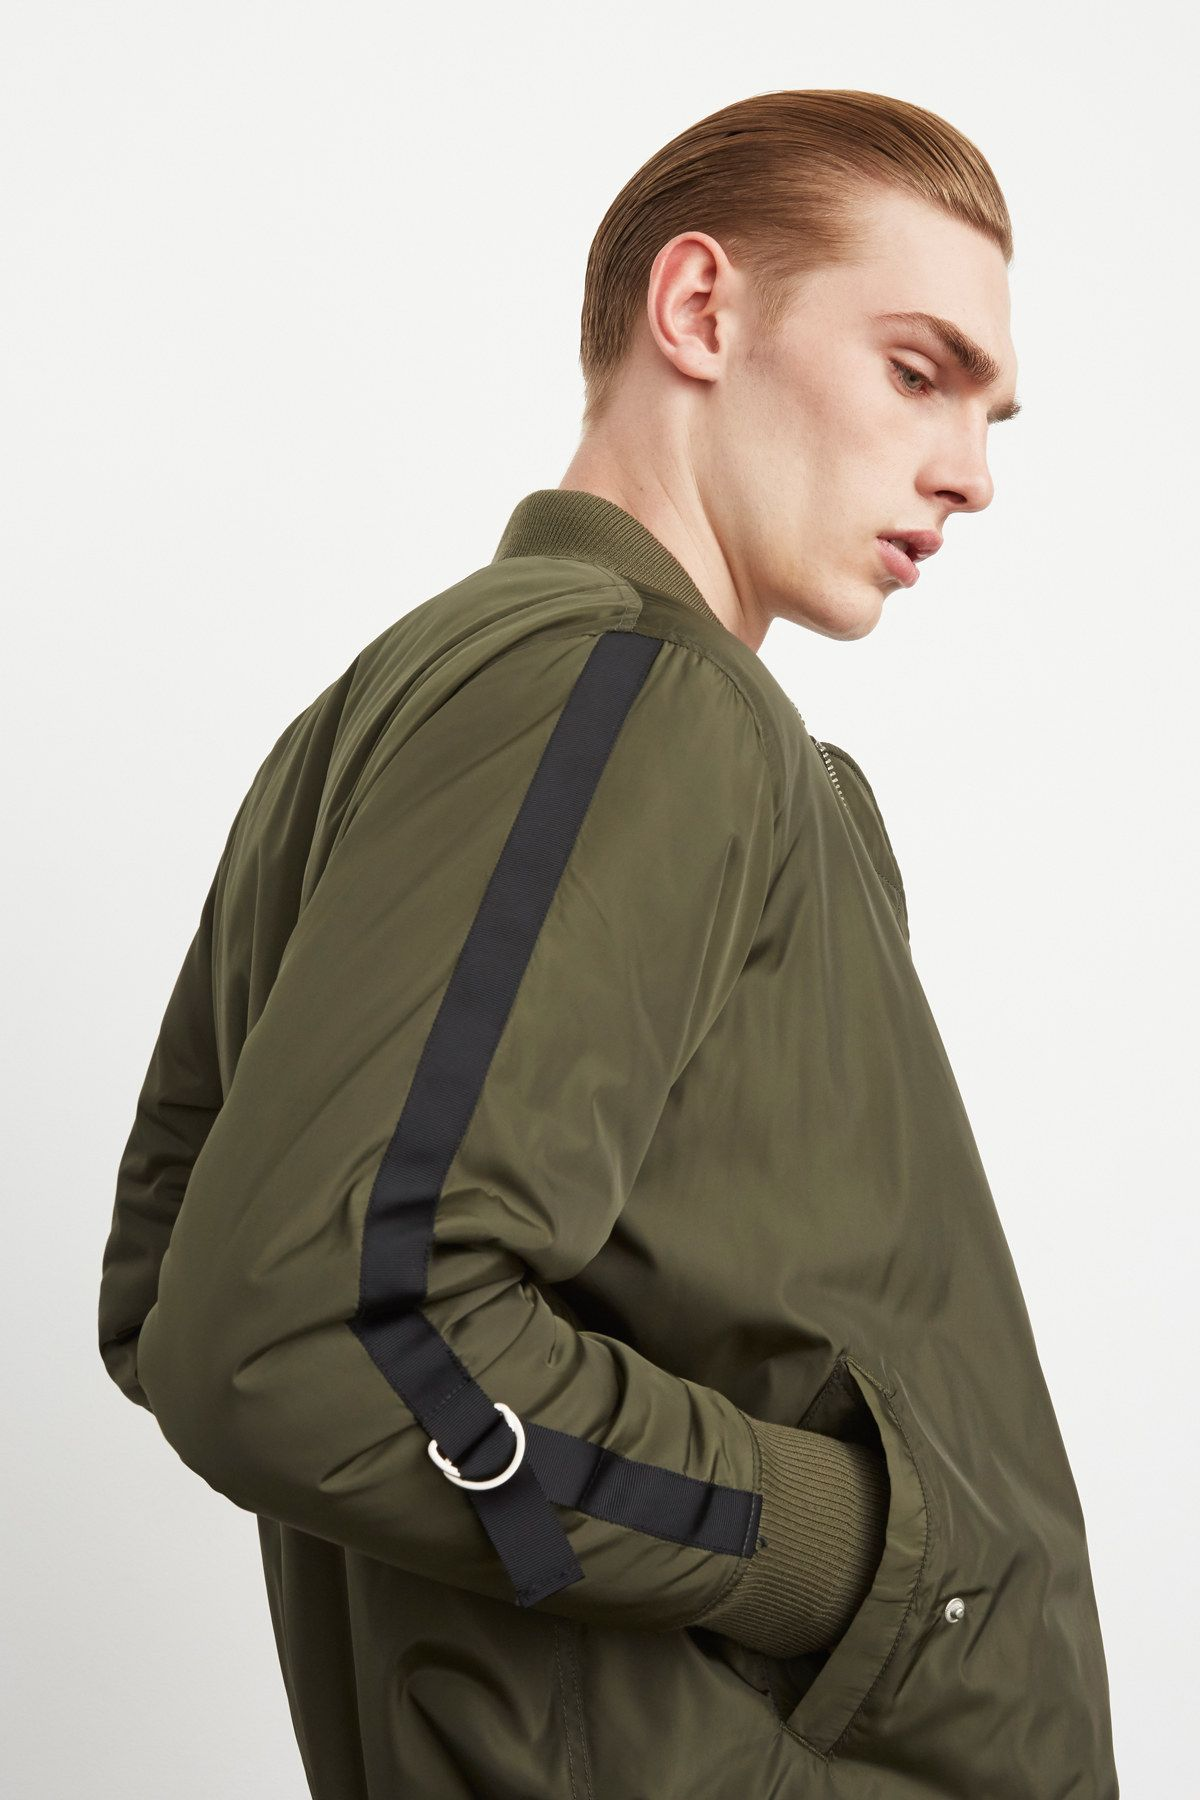 LA-Based Brand Stampd Makes Military-Inspired Wares For